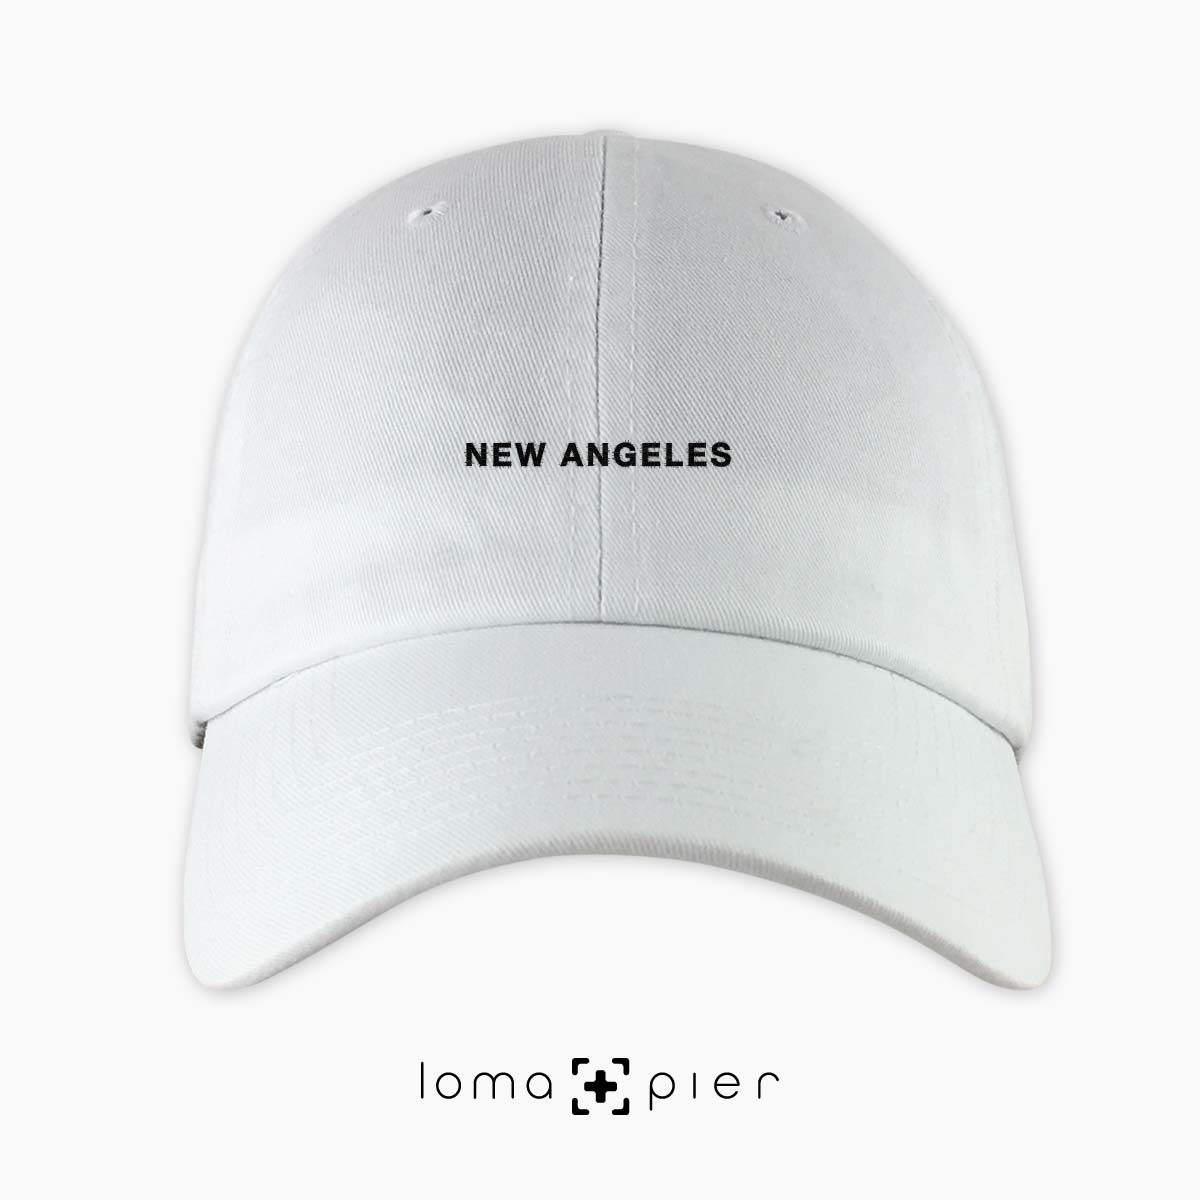 NEW ANGELES typography embroidered white dad hat black thread loma+pier hat store made in USA